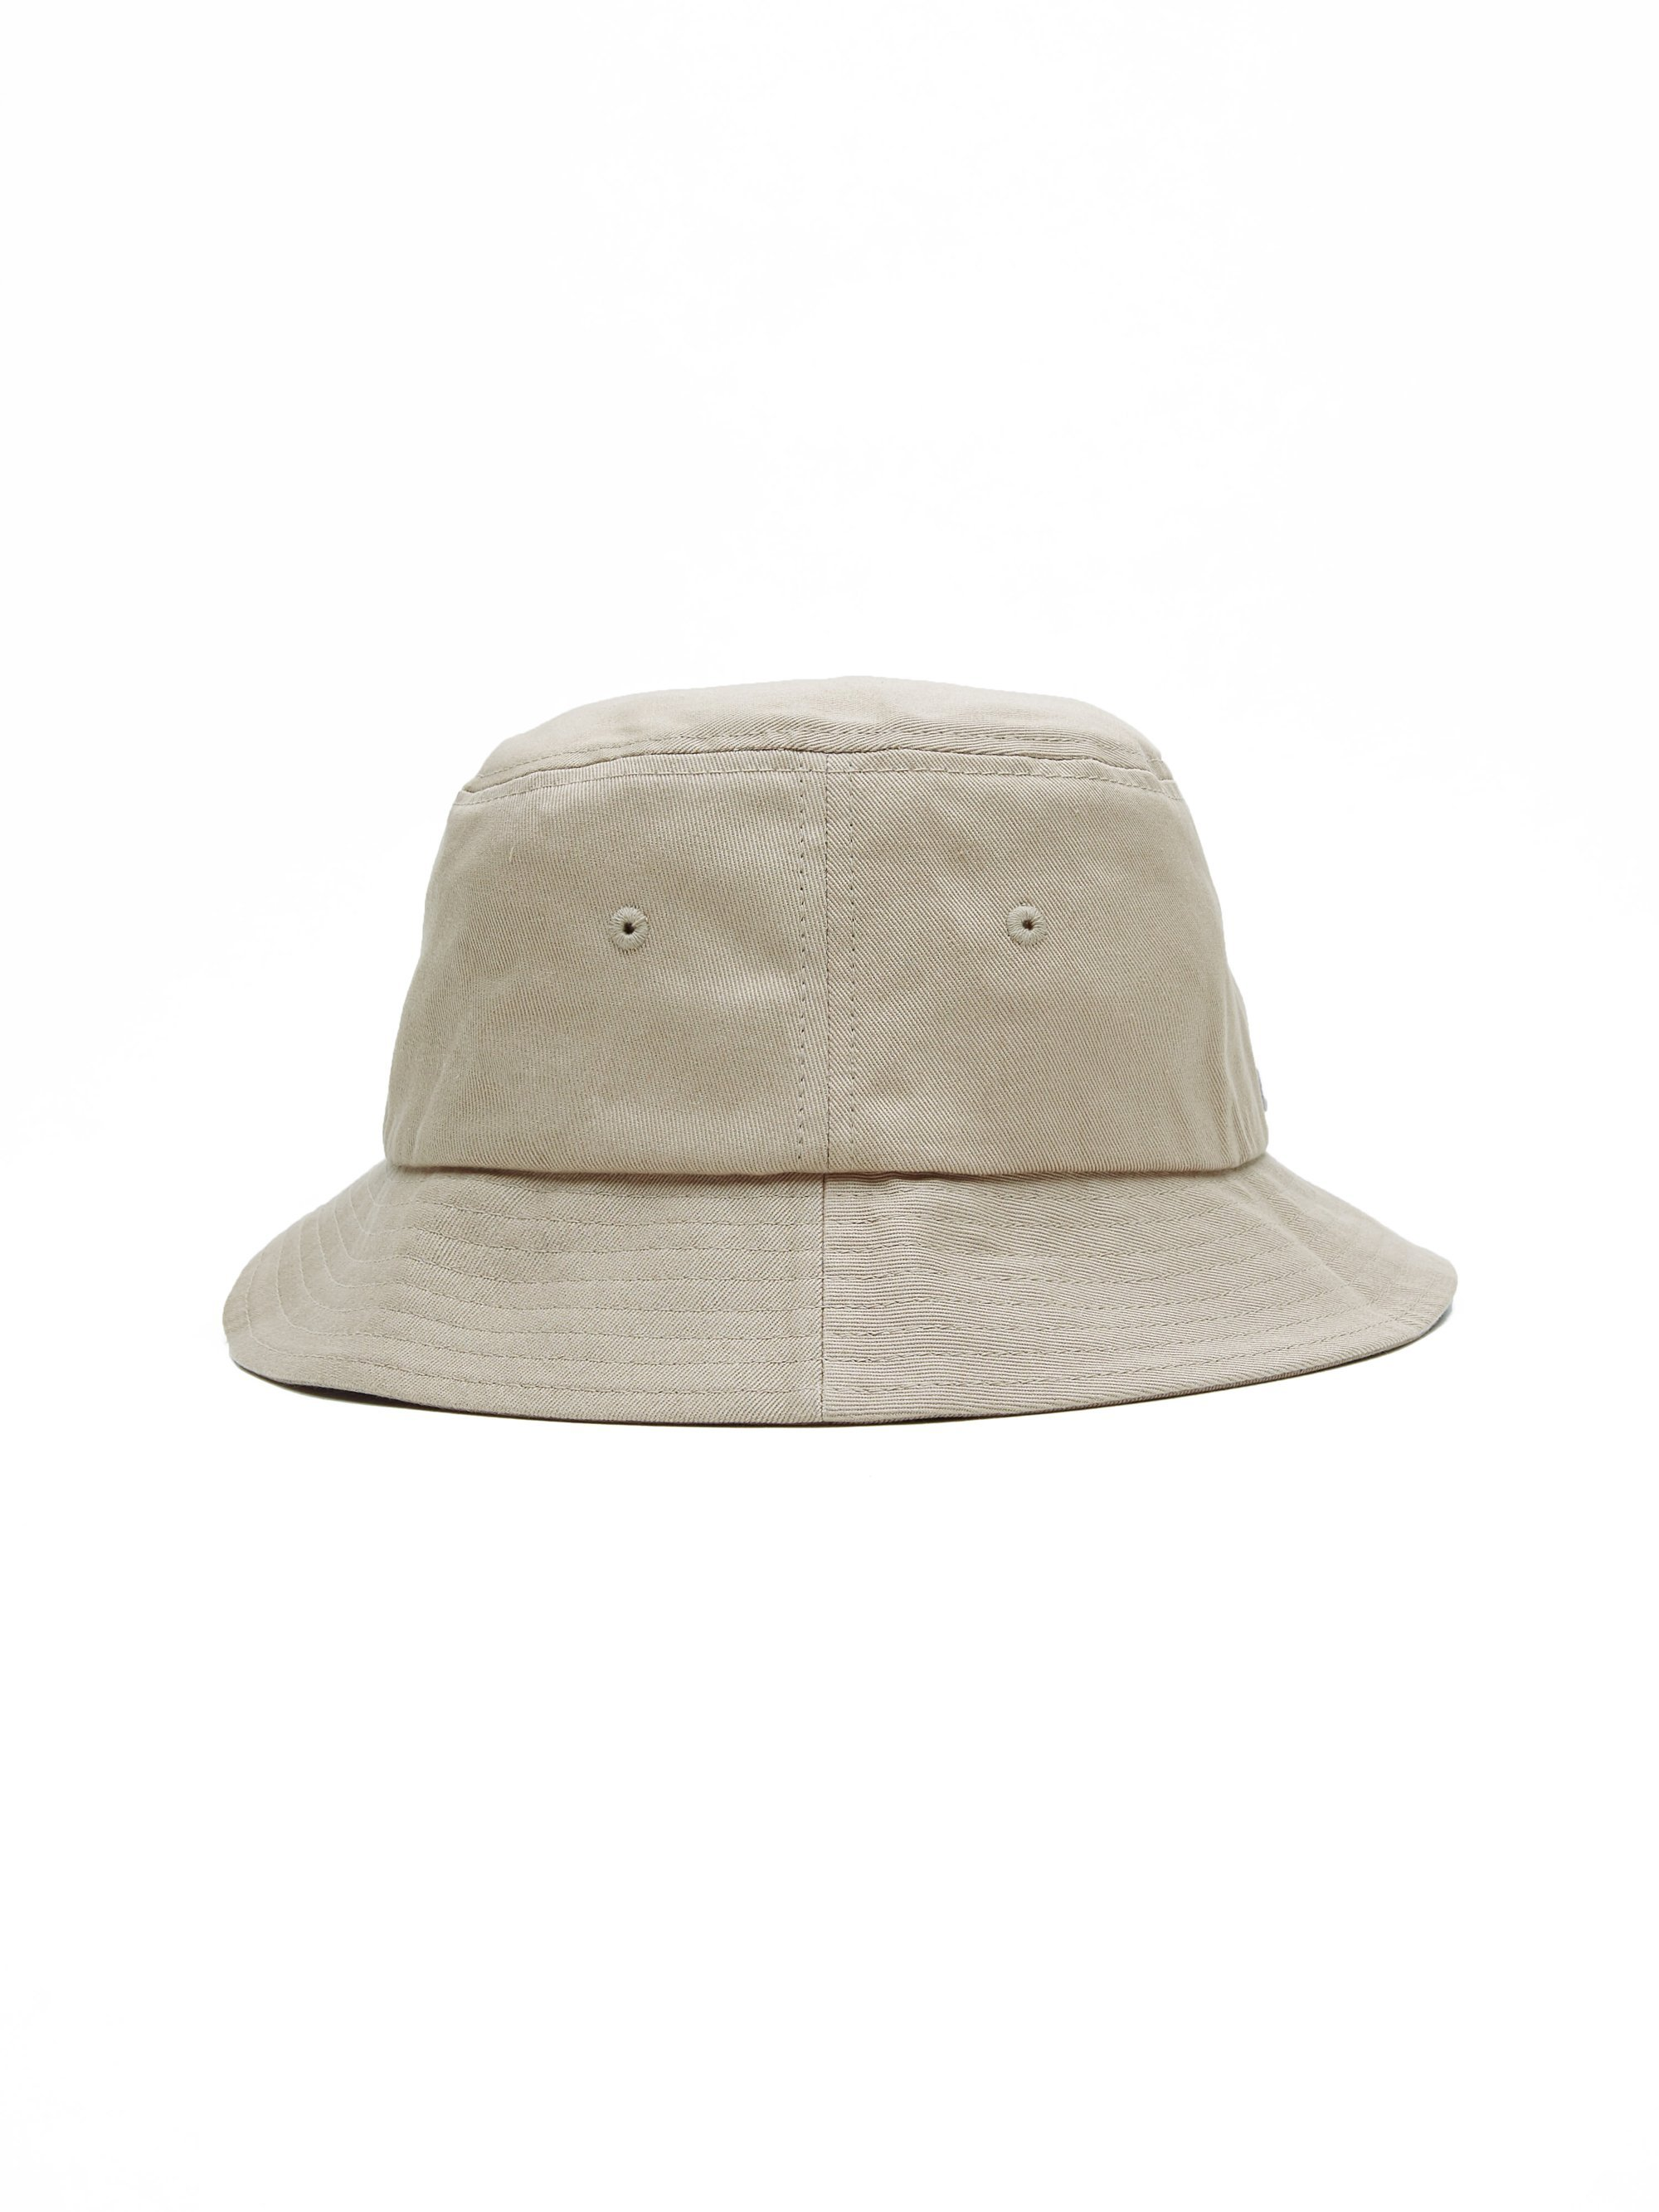 OBEY_Sleeper_Bucket_Hat_100520017_KHA_2_2000x.jpg